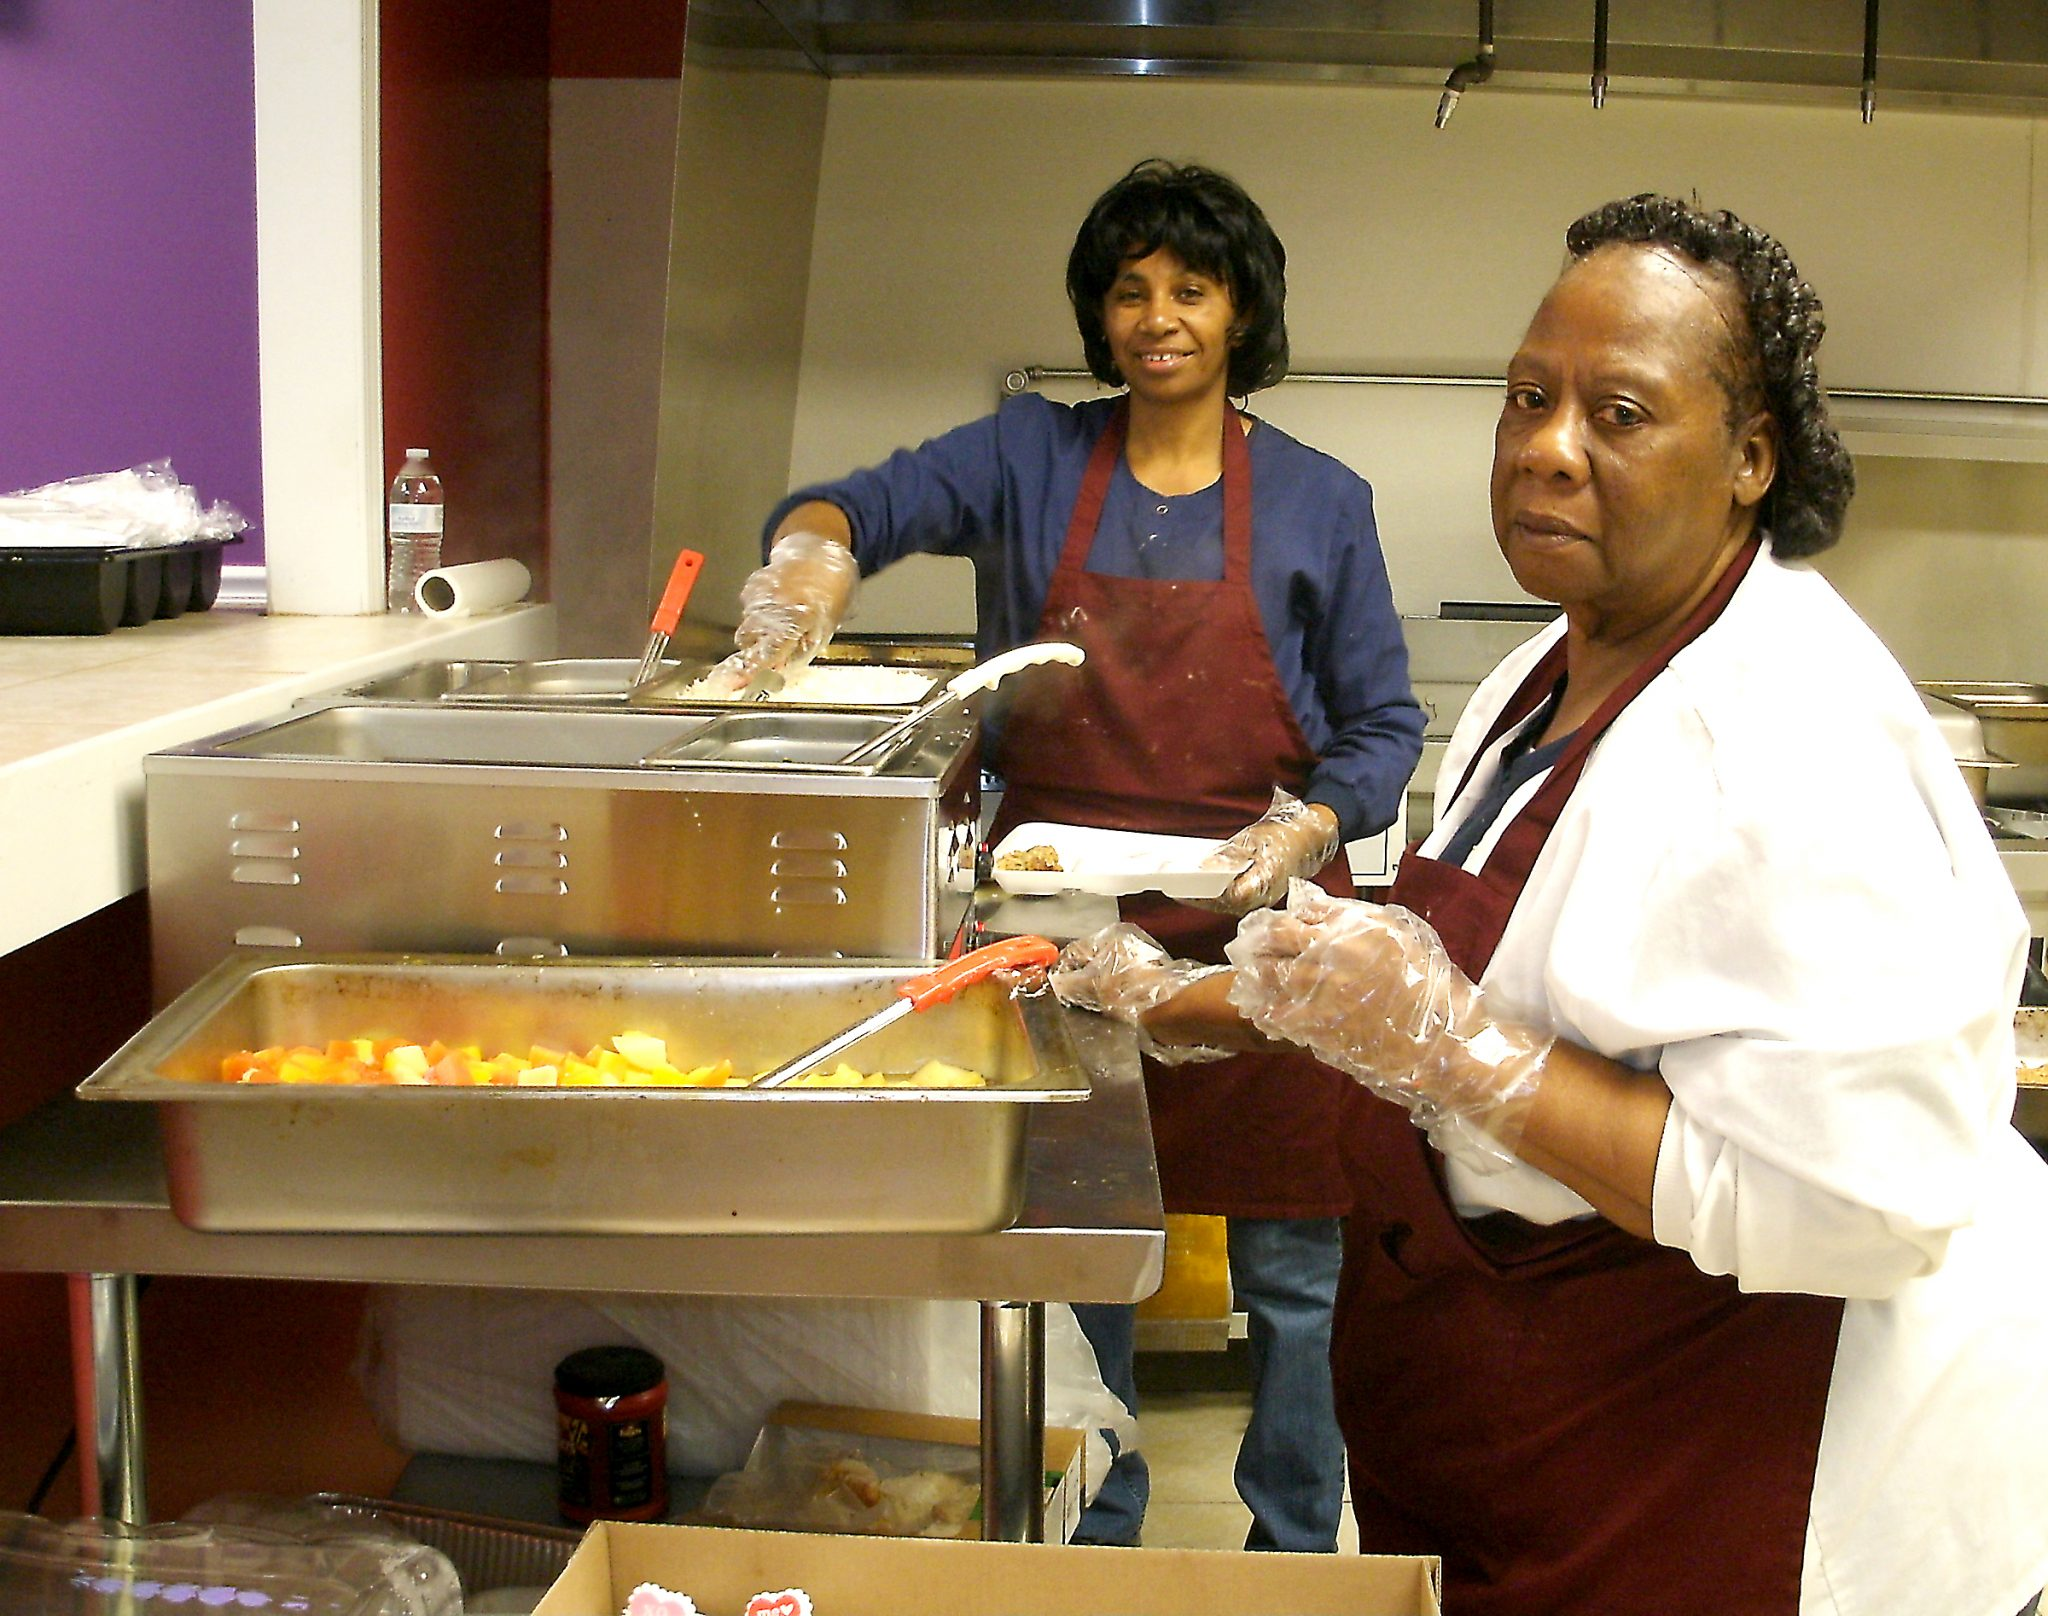 Soup Kitchen Soup Kitchen Providing Free Nutritious Meals To Hungry The